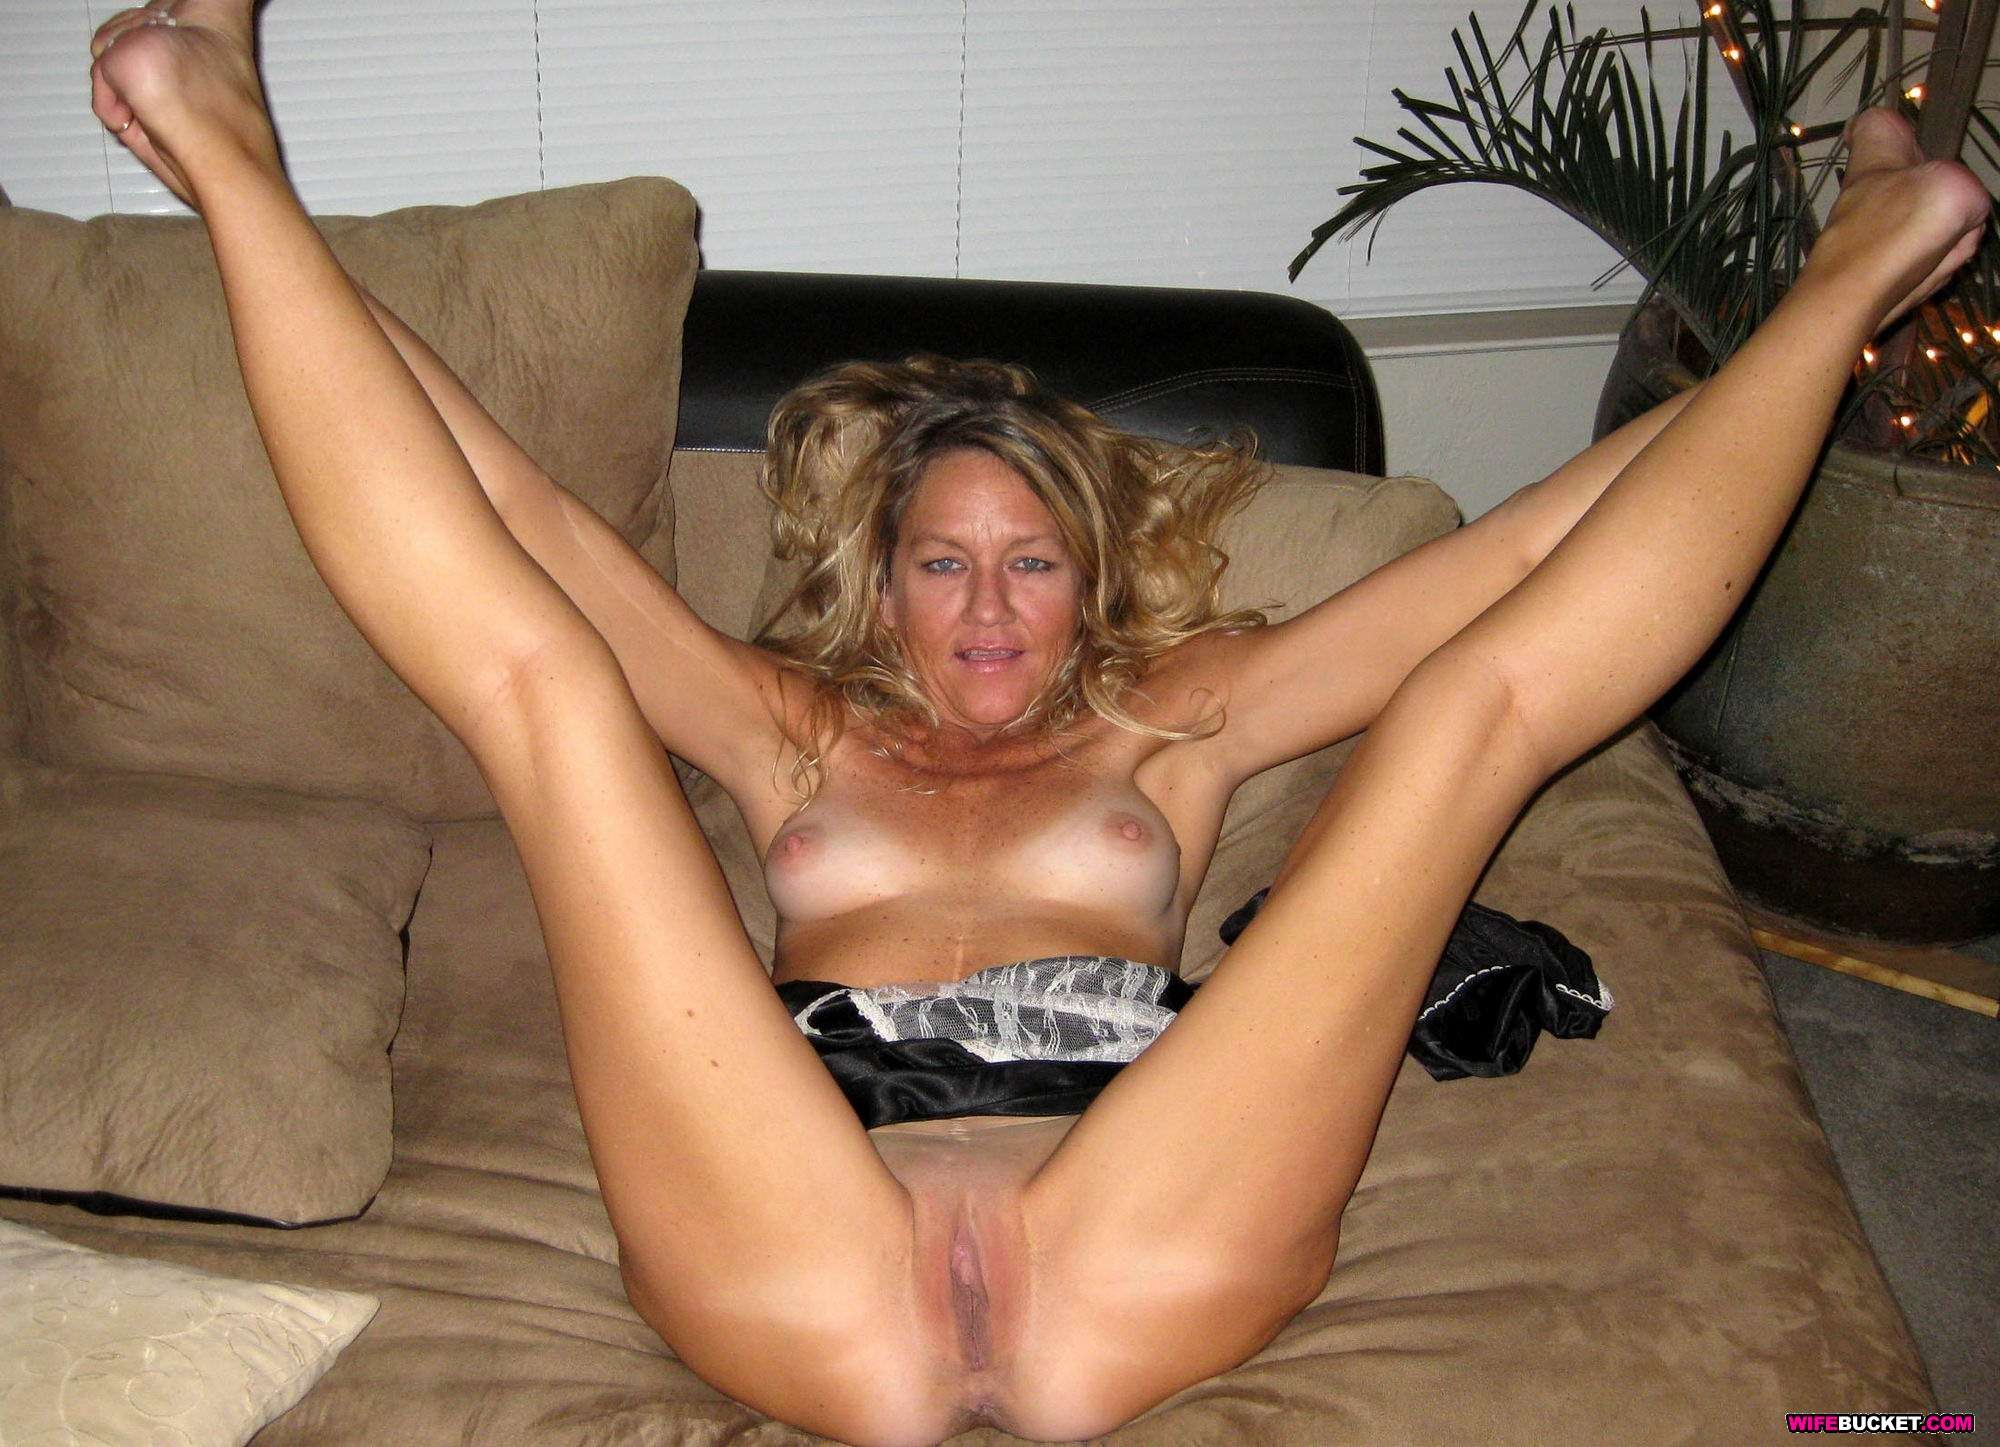 Pity, house nude wifes milf opinion you commit